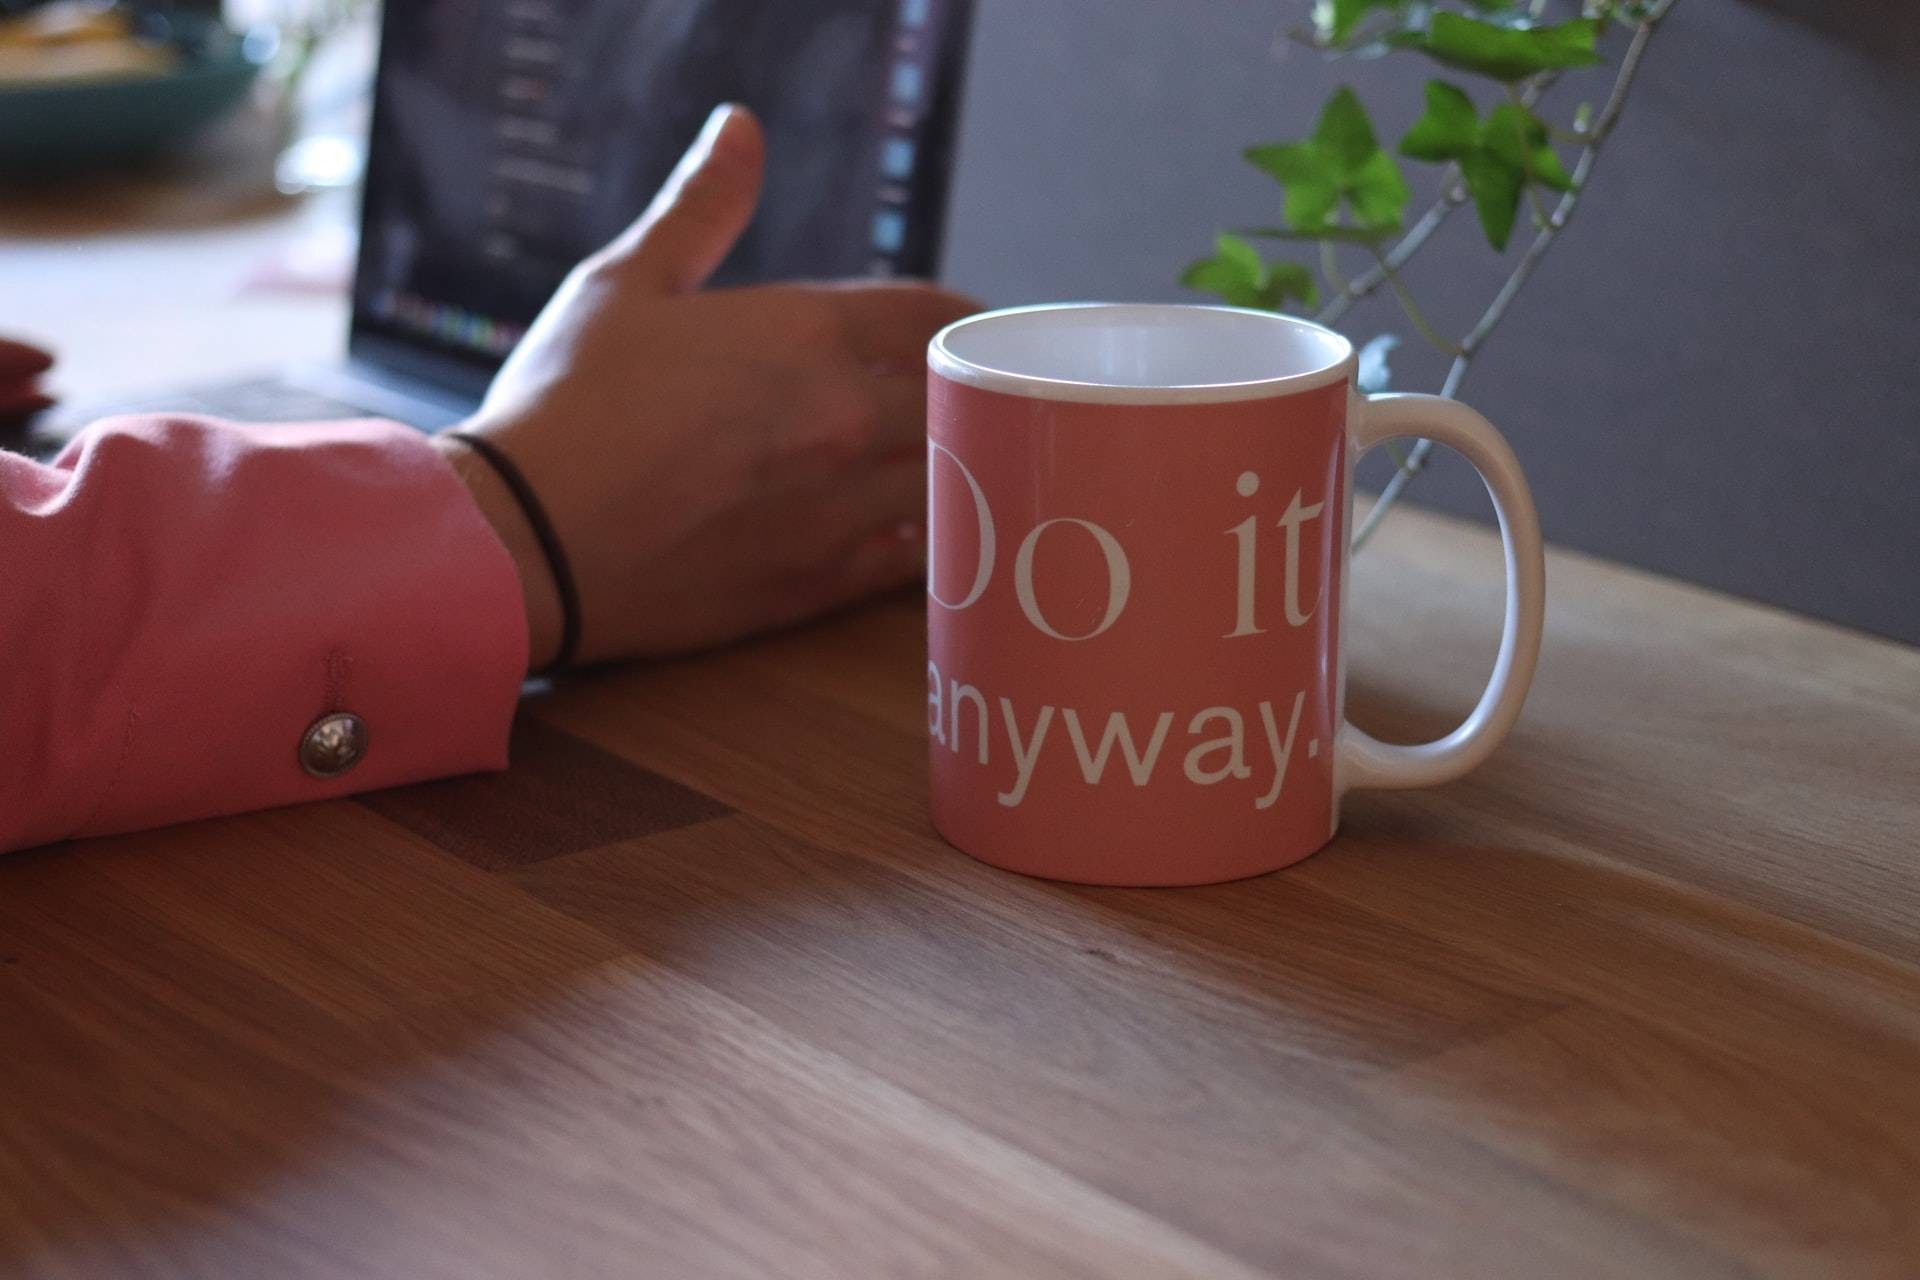 Close-up of a woman's hand and motivational cup